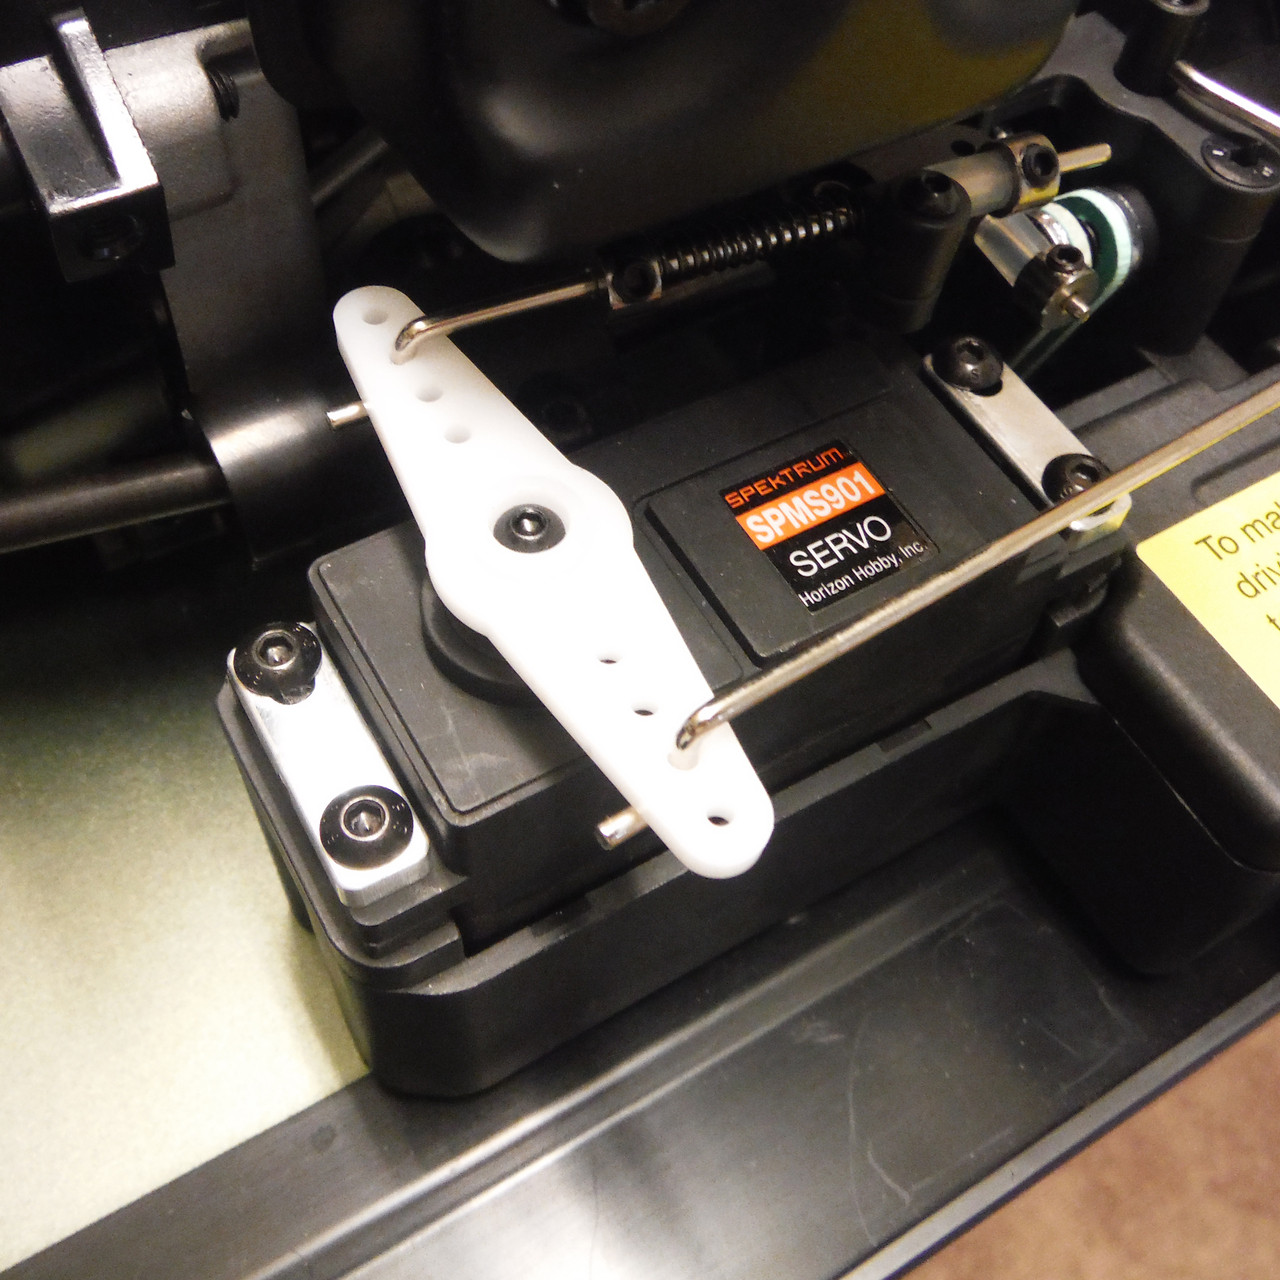 DBXL servo clamps shown mounted on the throttle/brake servo.